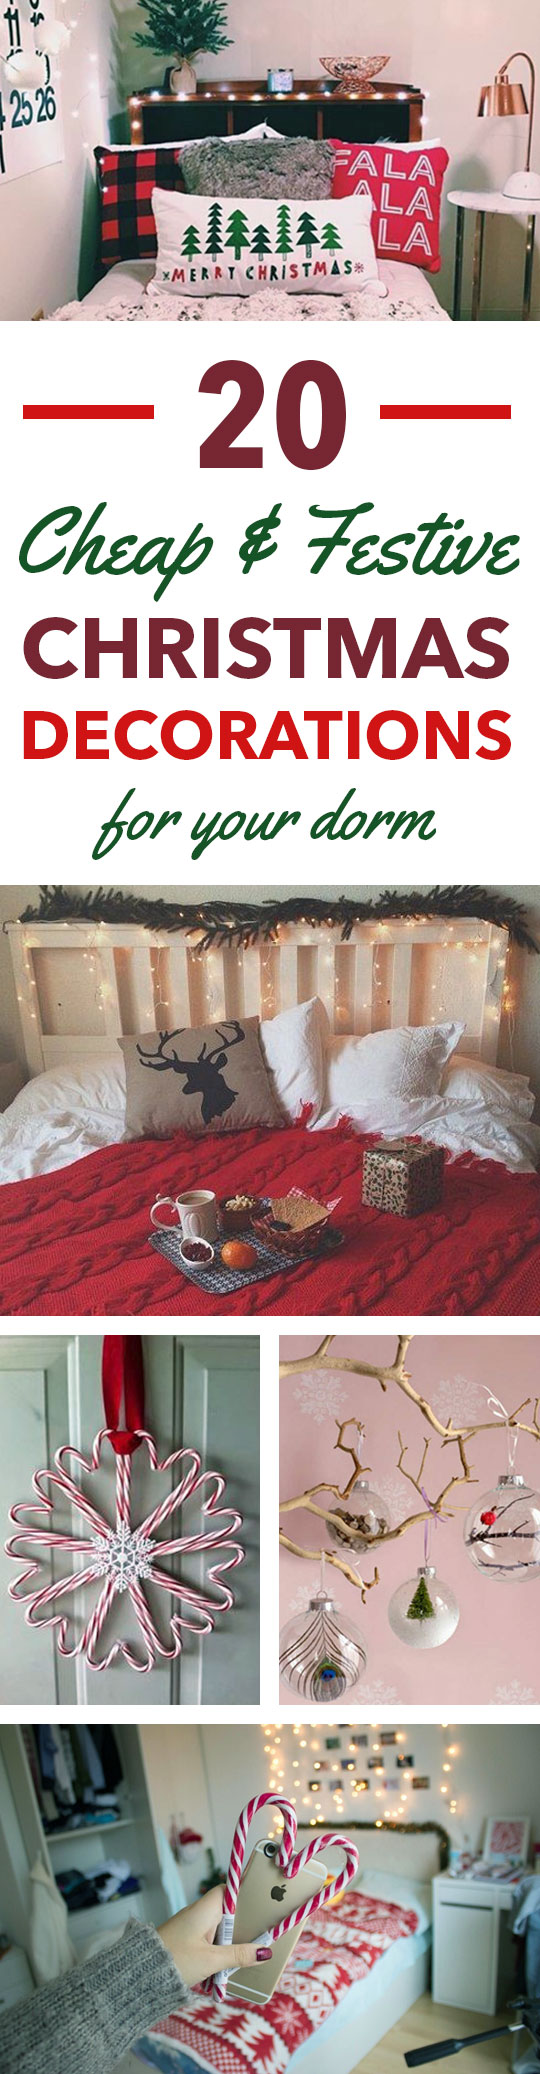 Best 20 Cheap Festive Items To Decorate Your Dorm For This Month